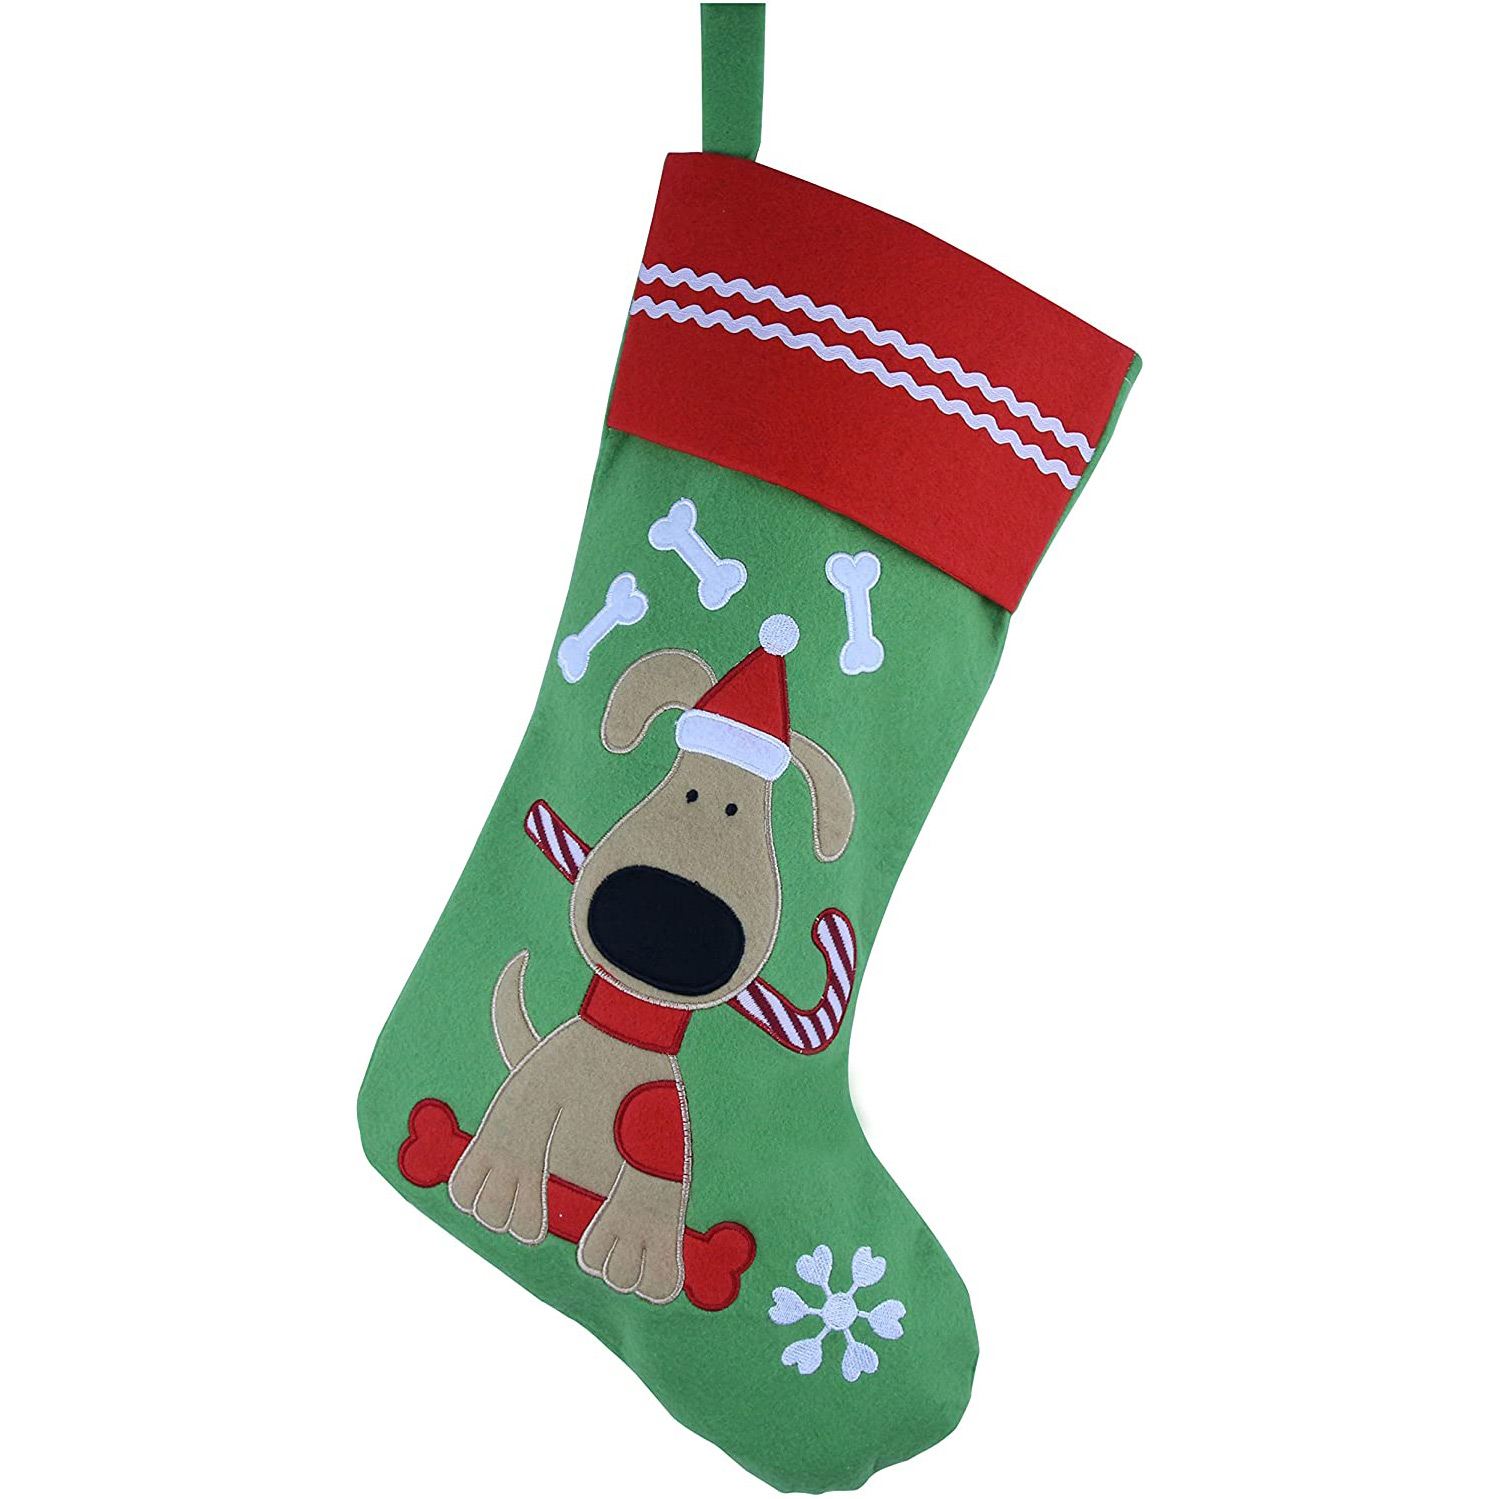 wewill-embroidered-pets-pattern-christmas-stockings